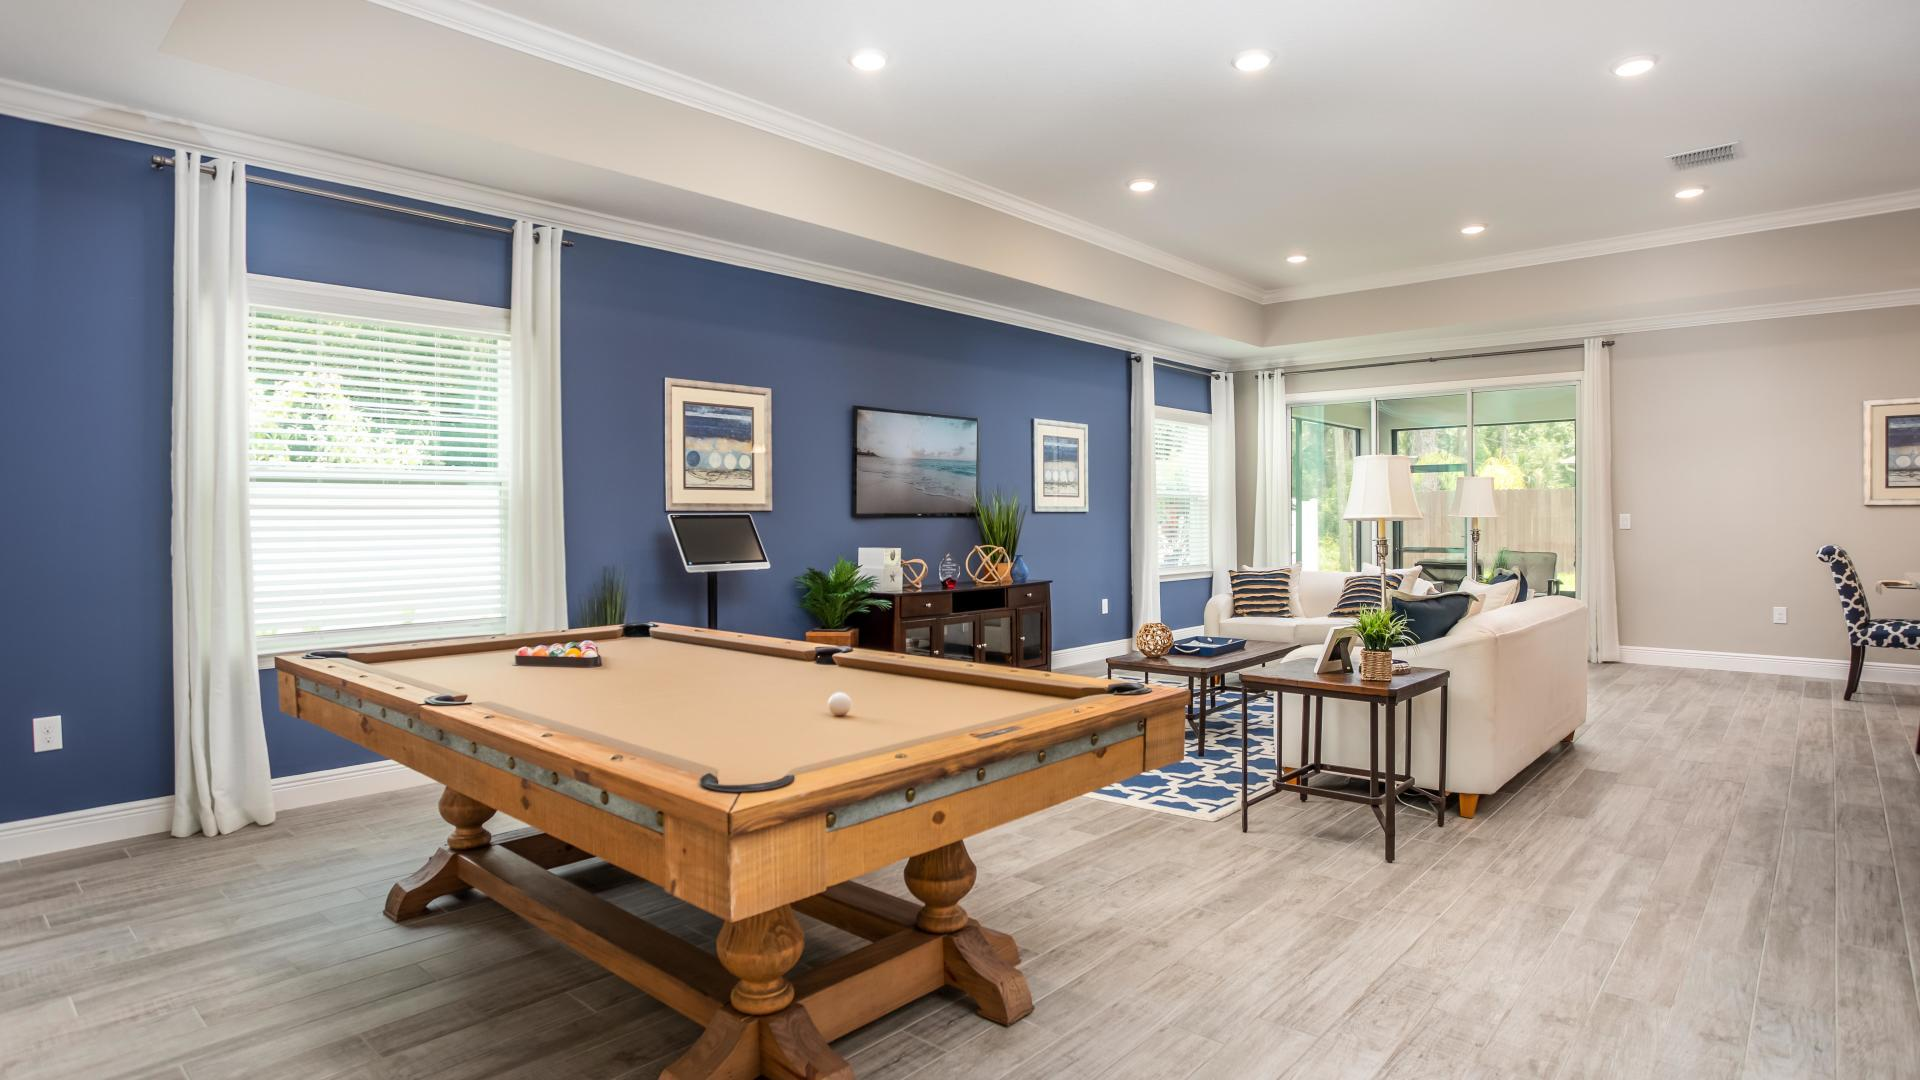 Living Area featured in the Harmony By Maronda Homes in Daytona Beach, FL